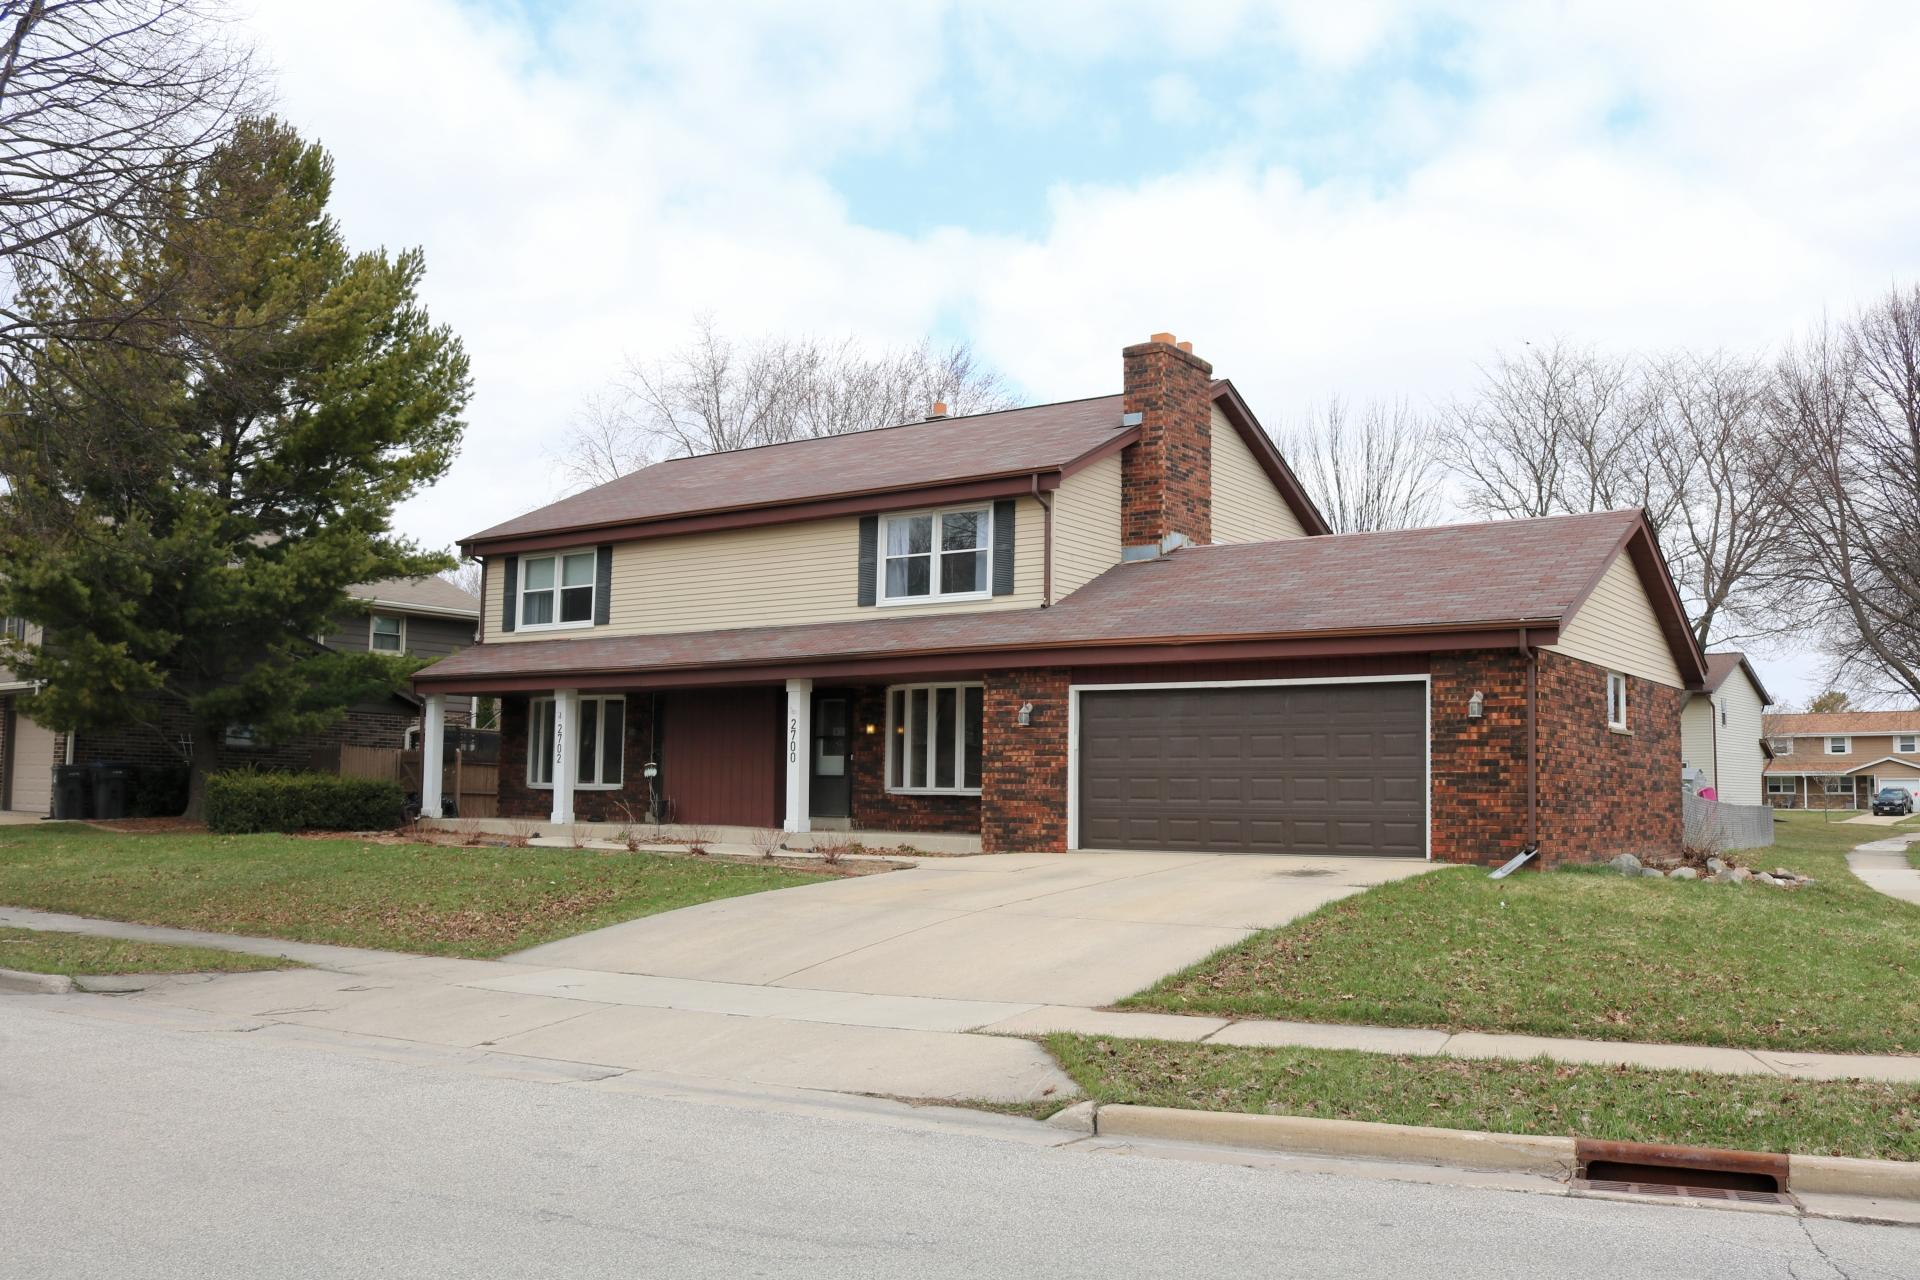 2700 Woodridge Ln, Waukesha, Wisconsin 53188, 3 Bedrooms Bedrooms, 5 Rooms Rooms,1 BathroomBathrooms,Two-Family,For Sale,Woodridge Ln,1,1734628